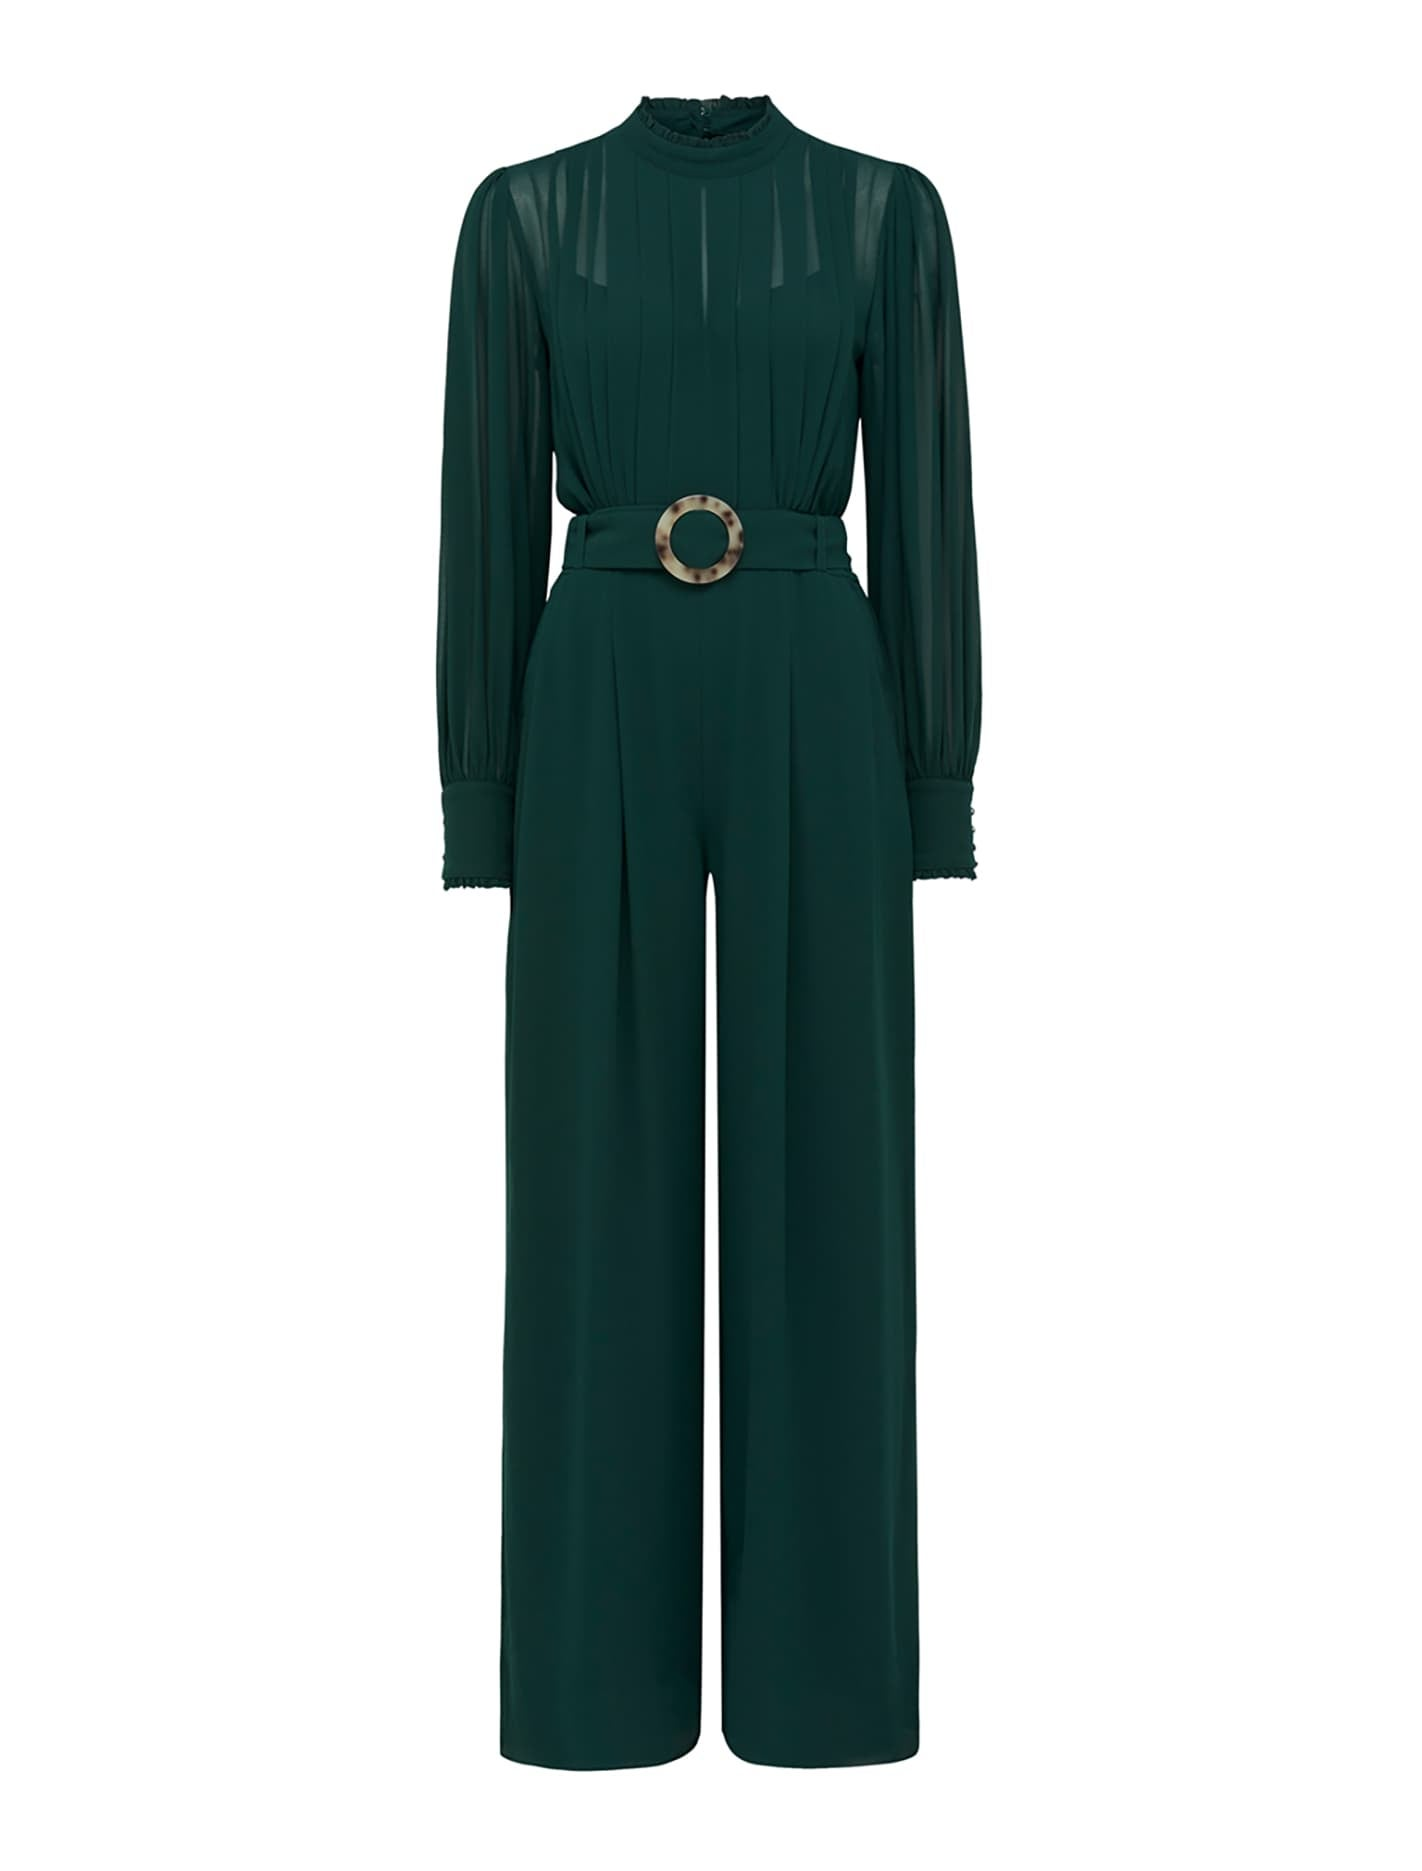 1980s Clothing, Fashion | 80s Style Clothes Octavia Pleated Jumpsuit - Dark Green - 12 $179.99 AT vintagedancer.com